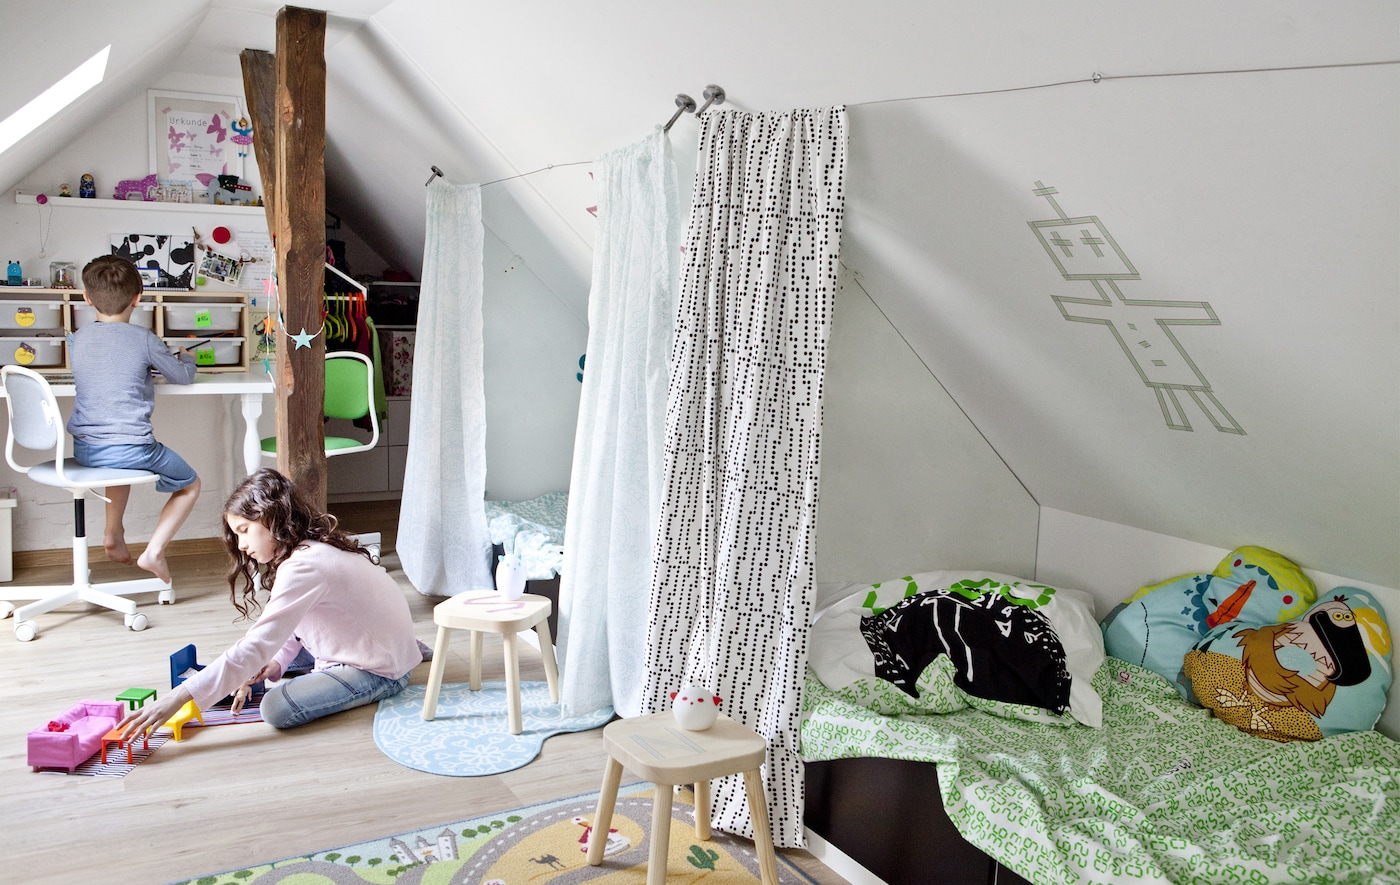 Two children playing in a shared bedroom.